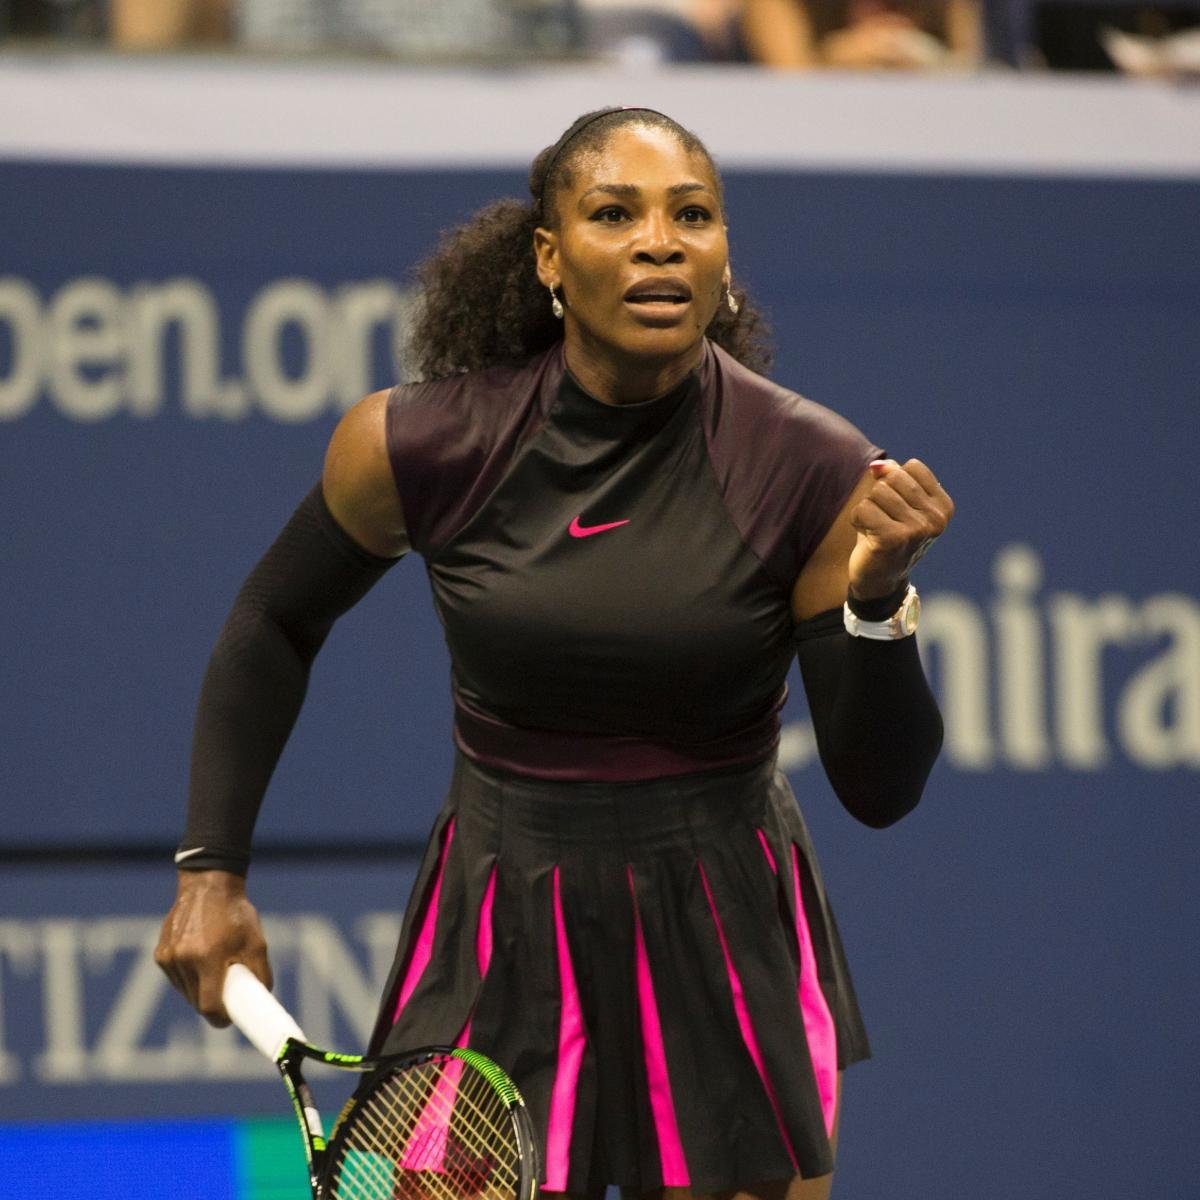 nike releases serena williams ad featuring brand athletes. Black Bedroom Furniture Sets. Home Design Ideas